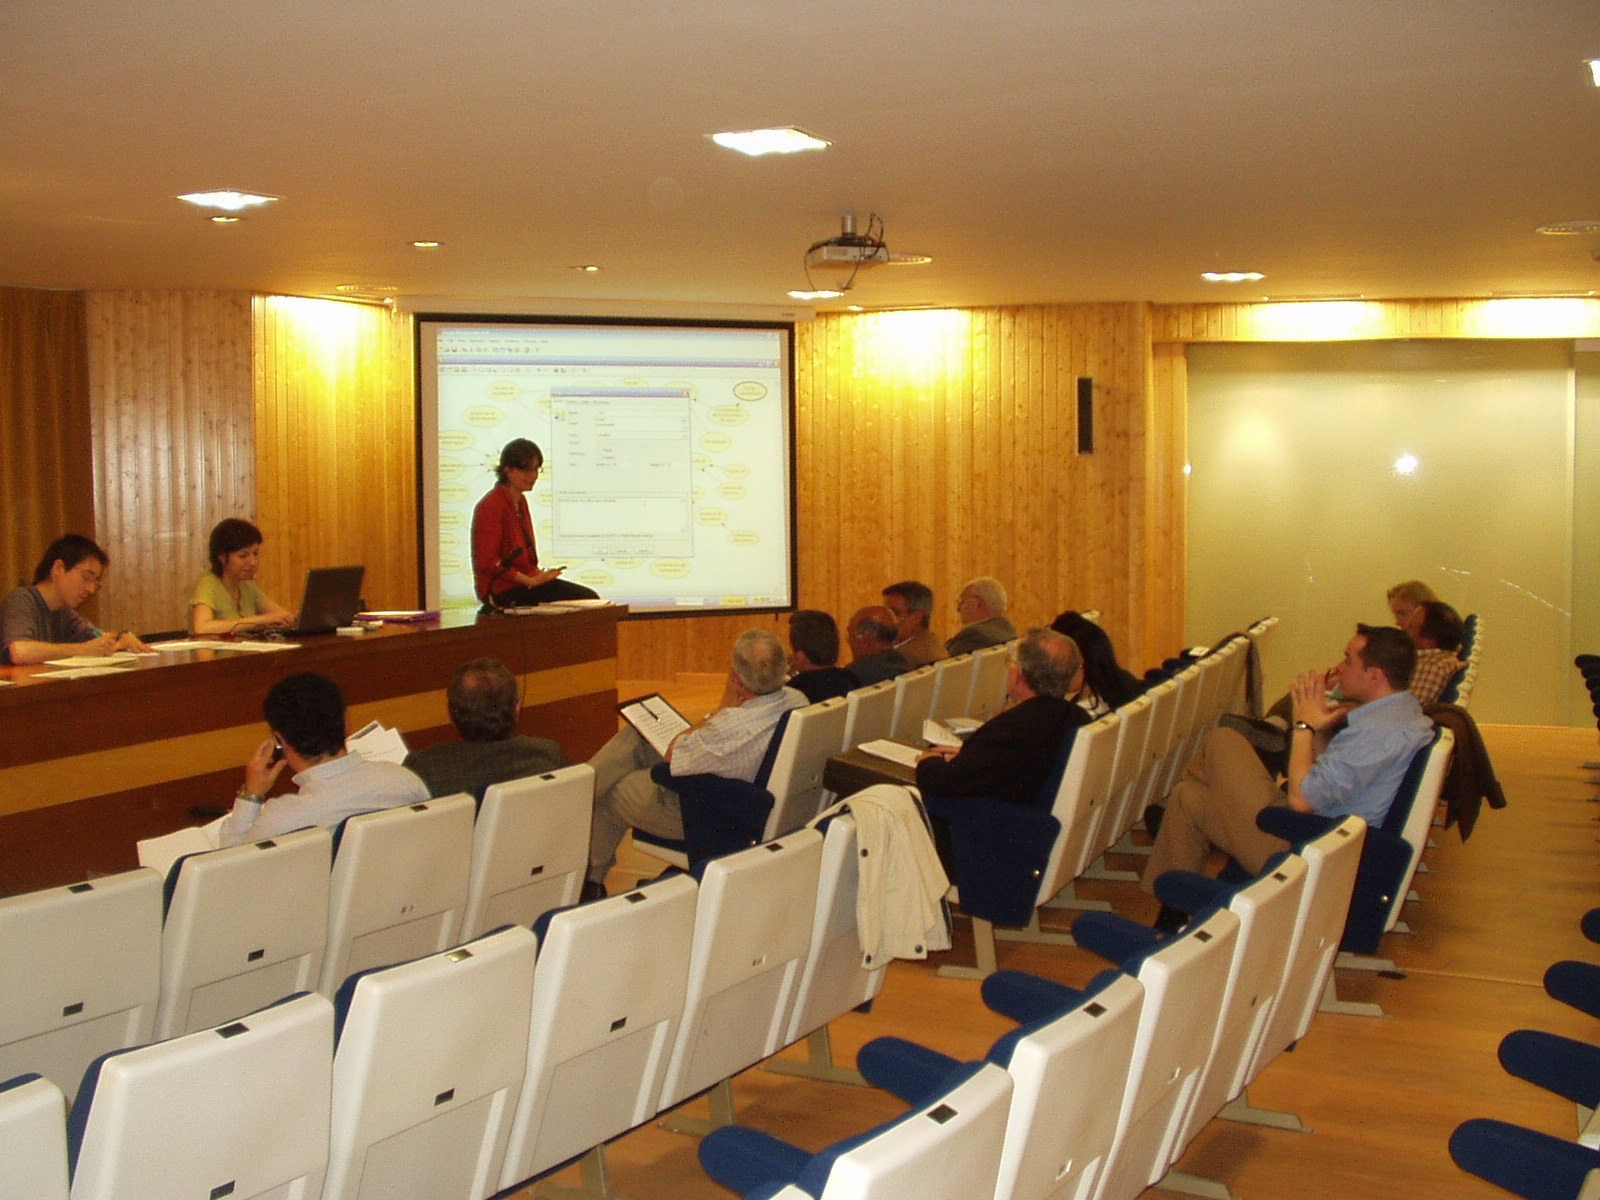 The picture was taken during the meeting in Ciudad Real (May 10, 2007).